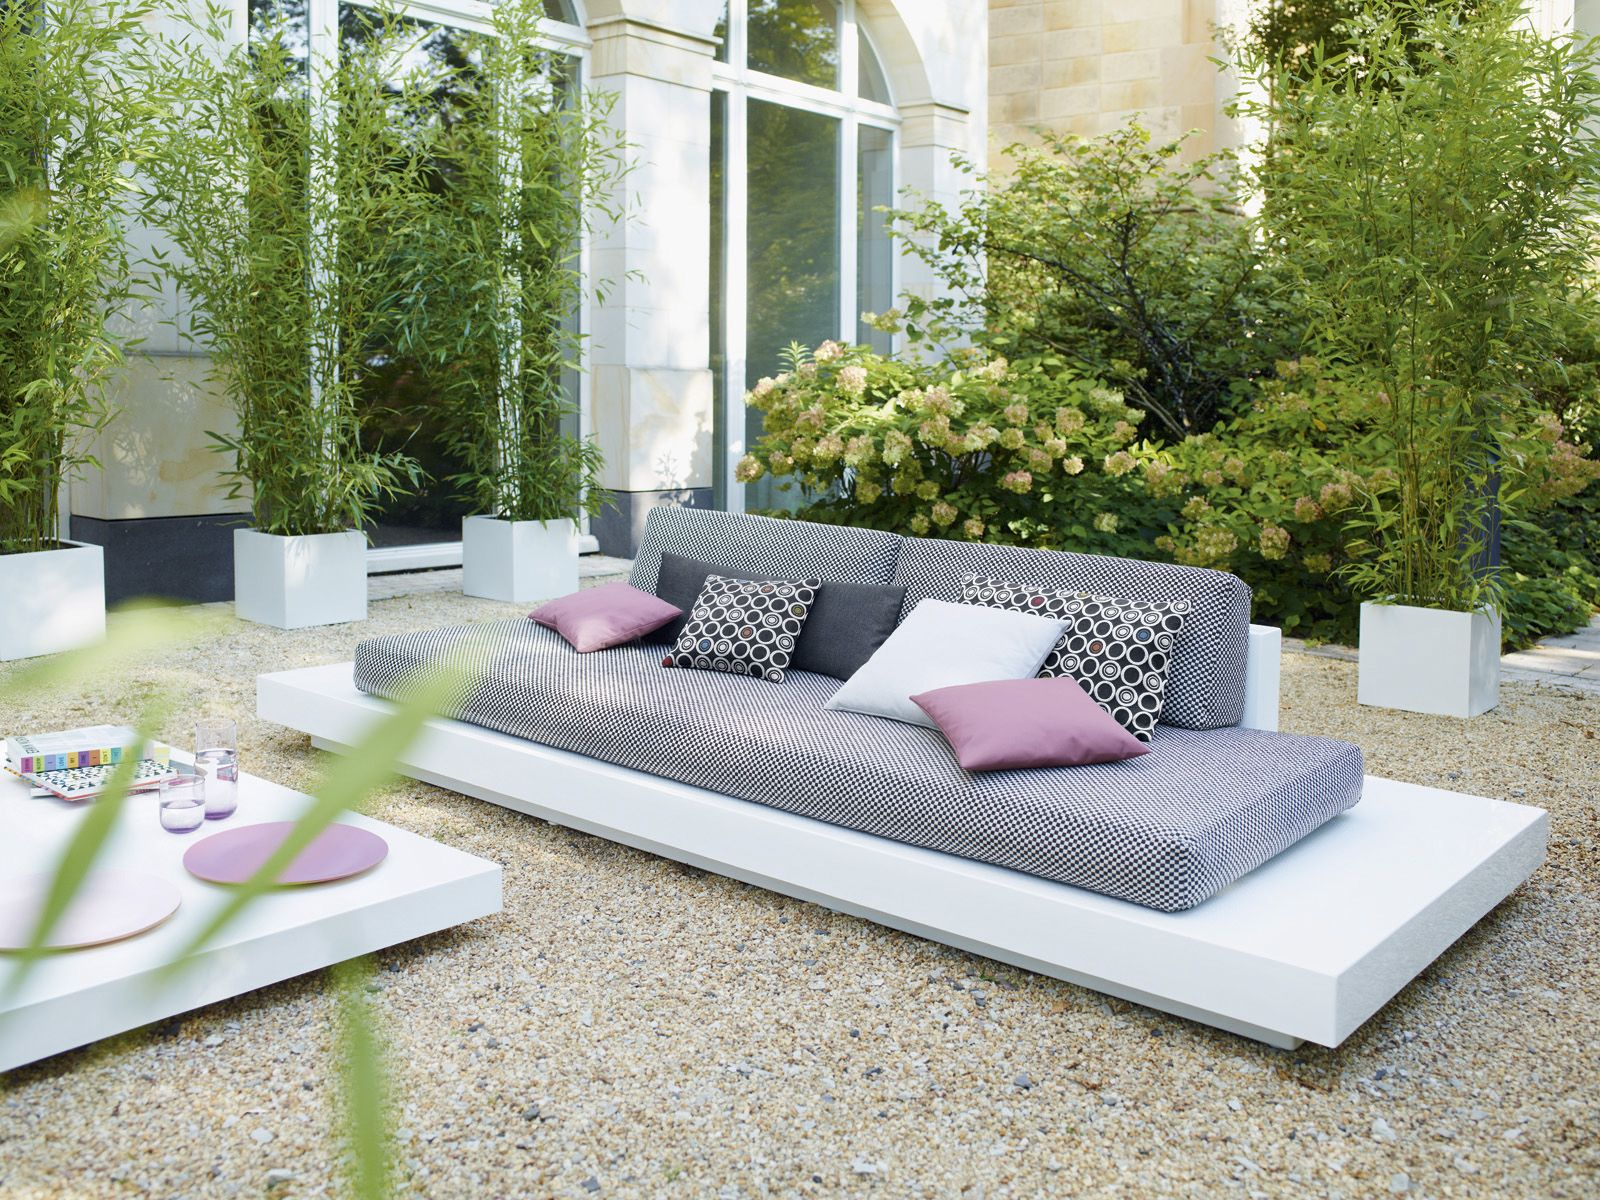 outside lounge idea - so simple. YAY. This could definitely work ...